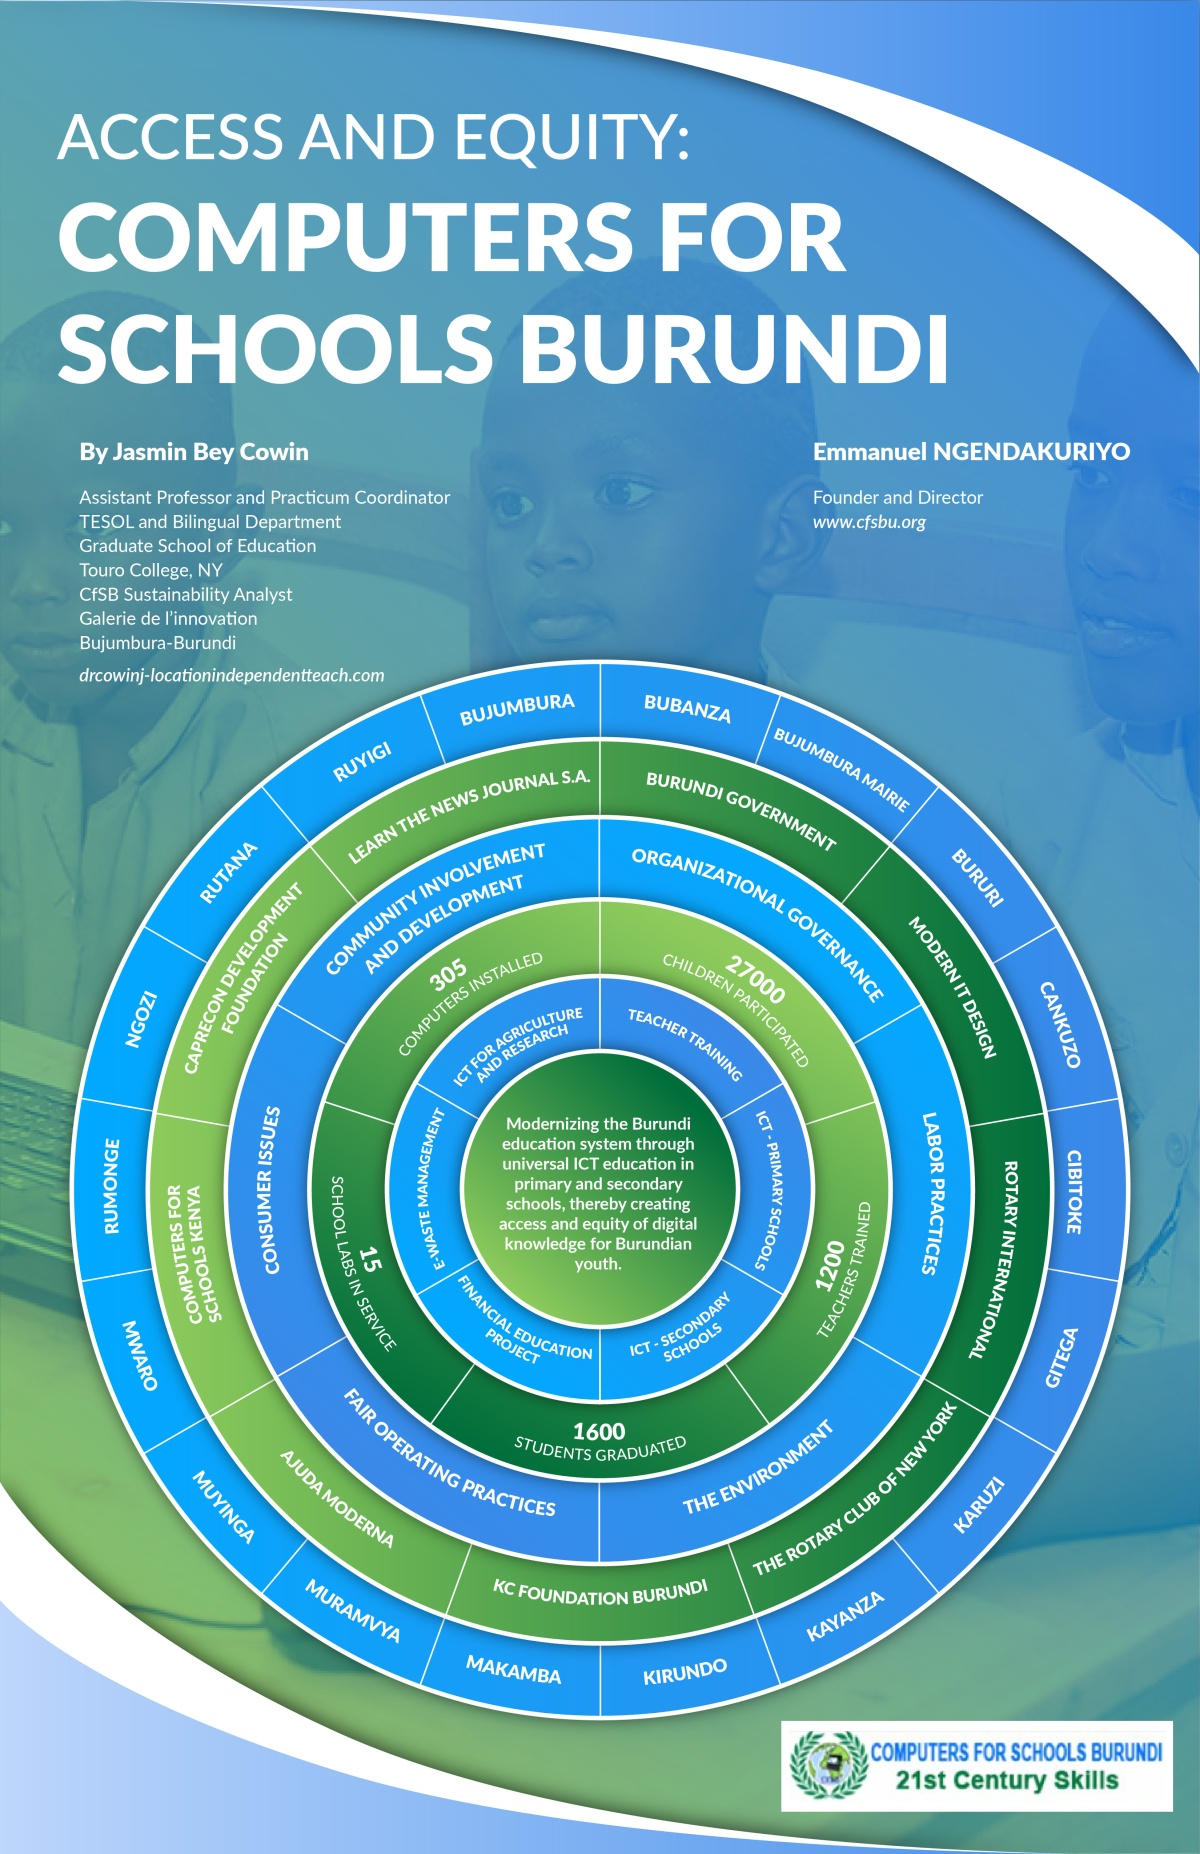 Journal of Higher Education Theory and Practice Publication: Access and Equity: Computers for Schools Burundi by Dr. Jasmin BeyCowin